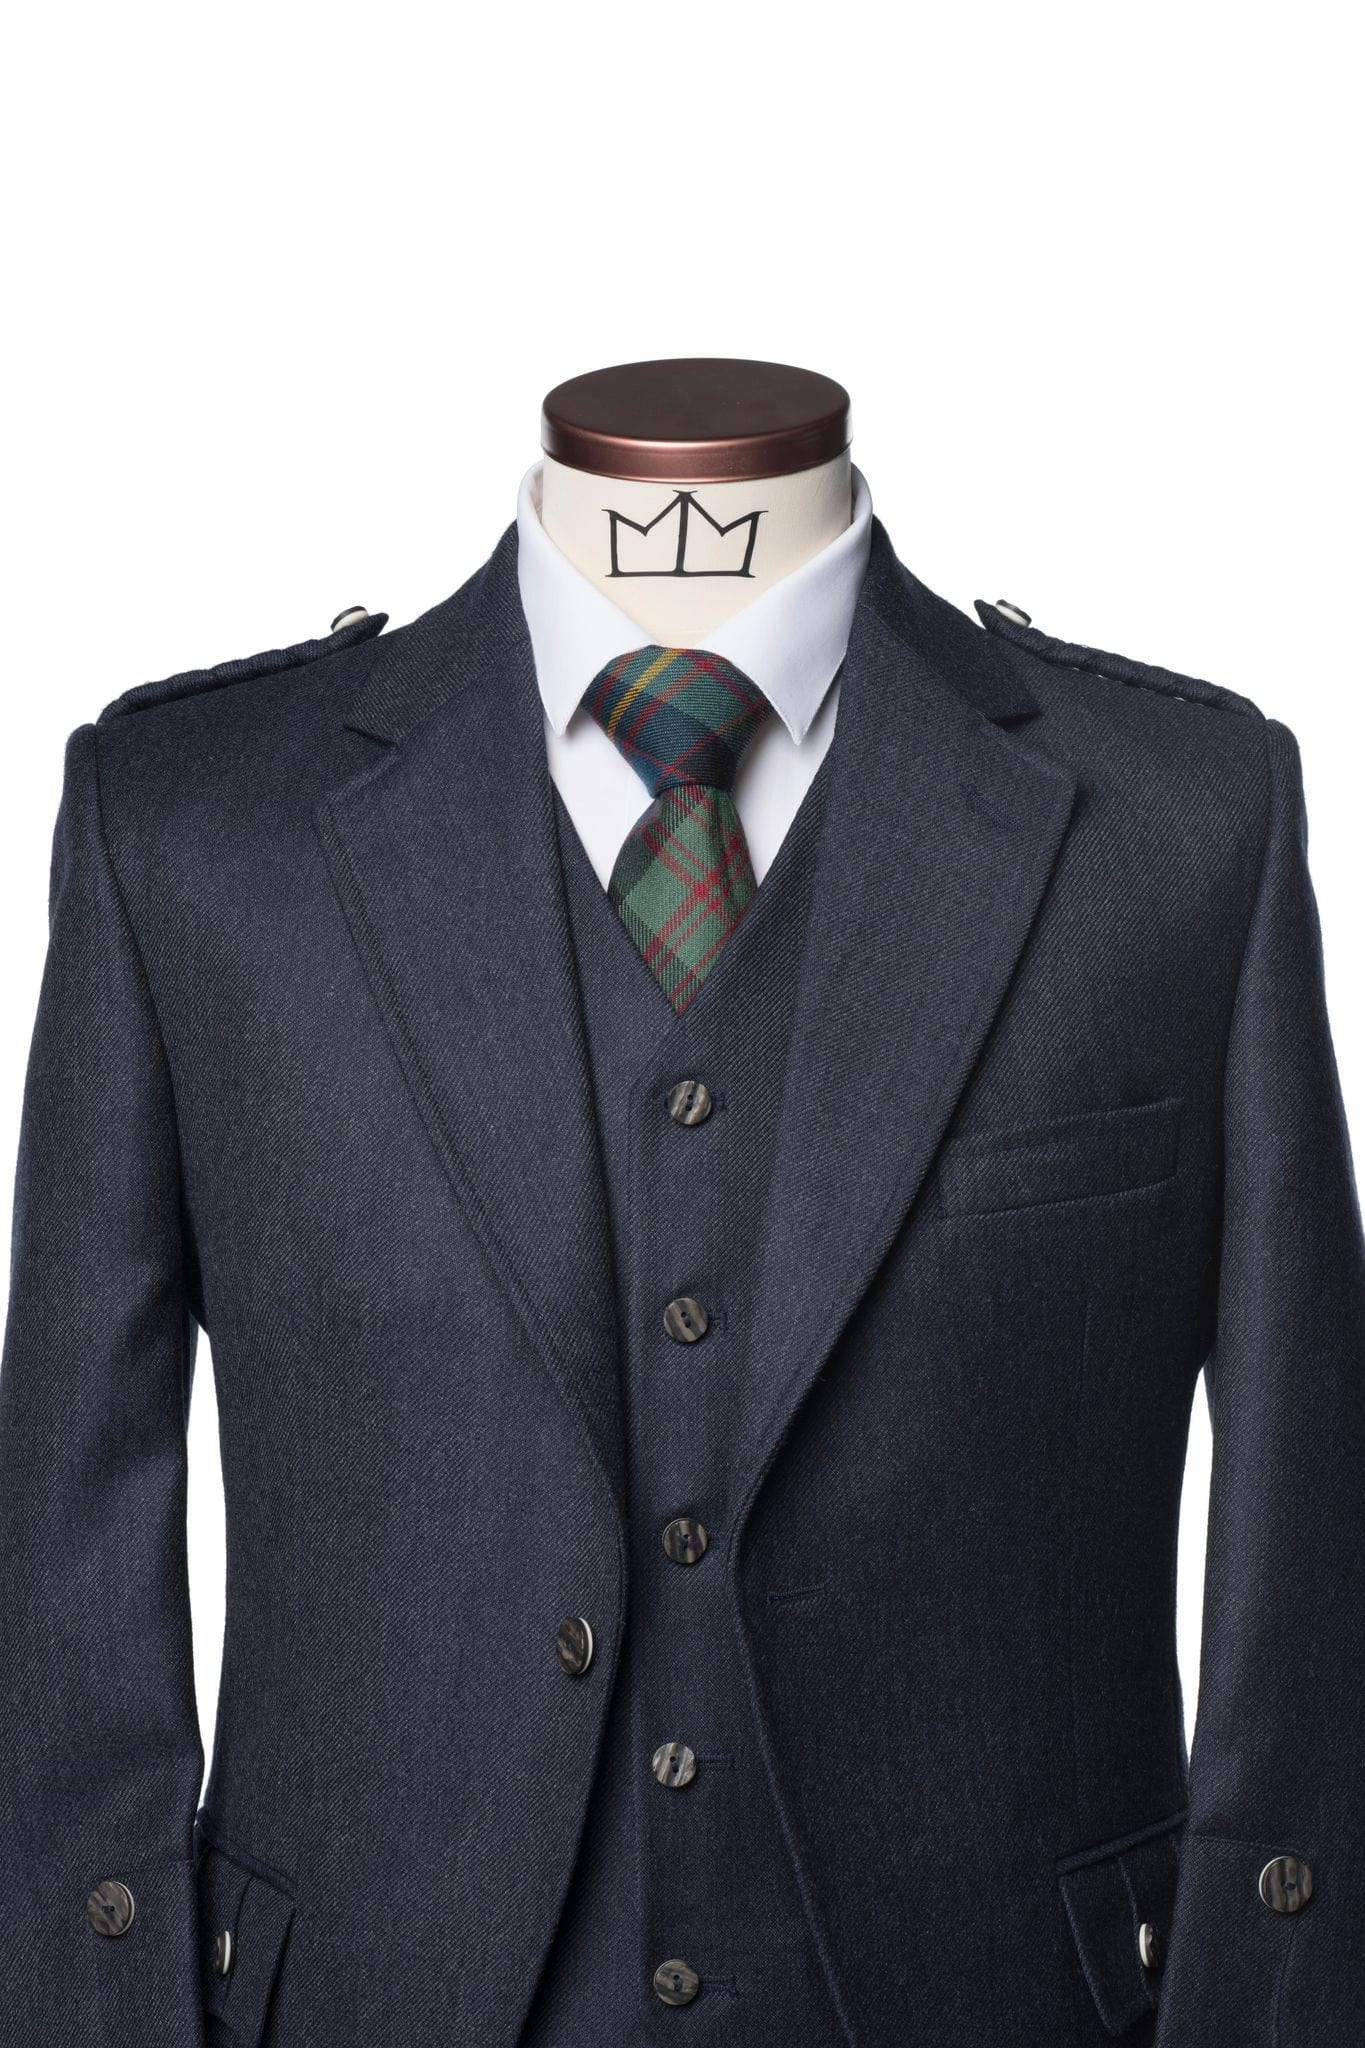 Mens Tartan Trousers Outfit - MacGregor and MacDuff